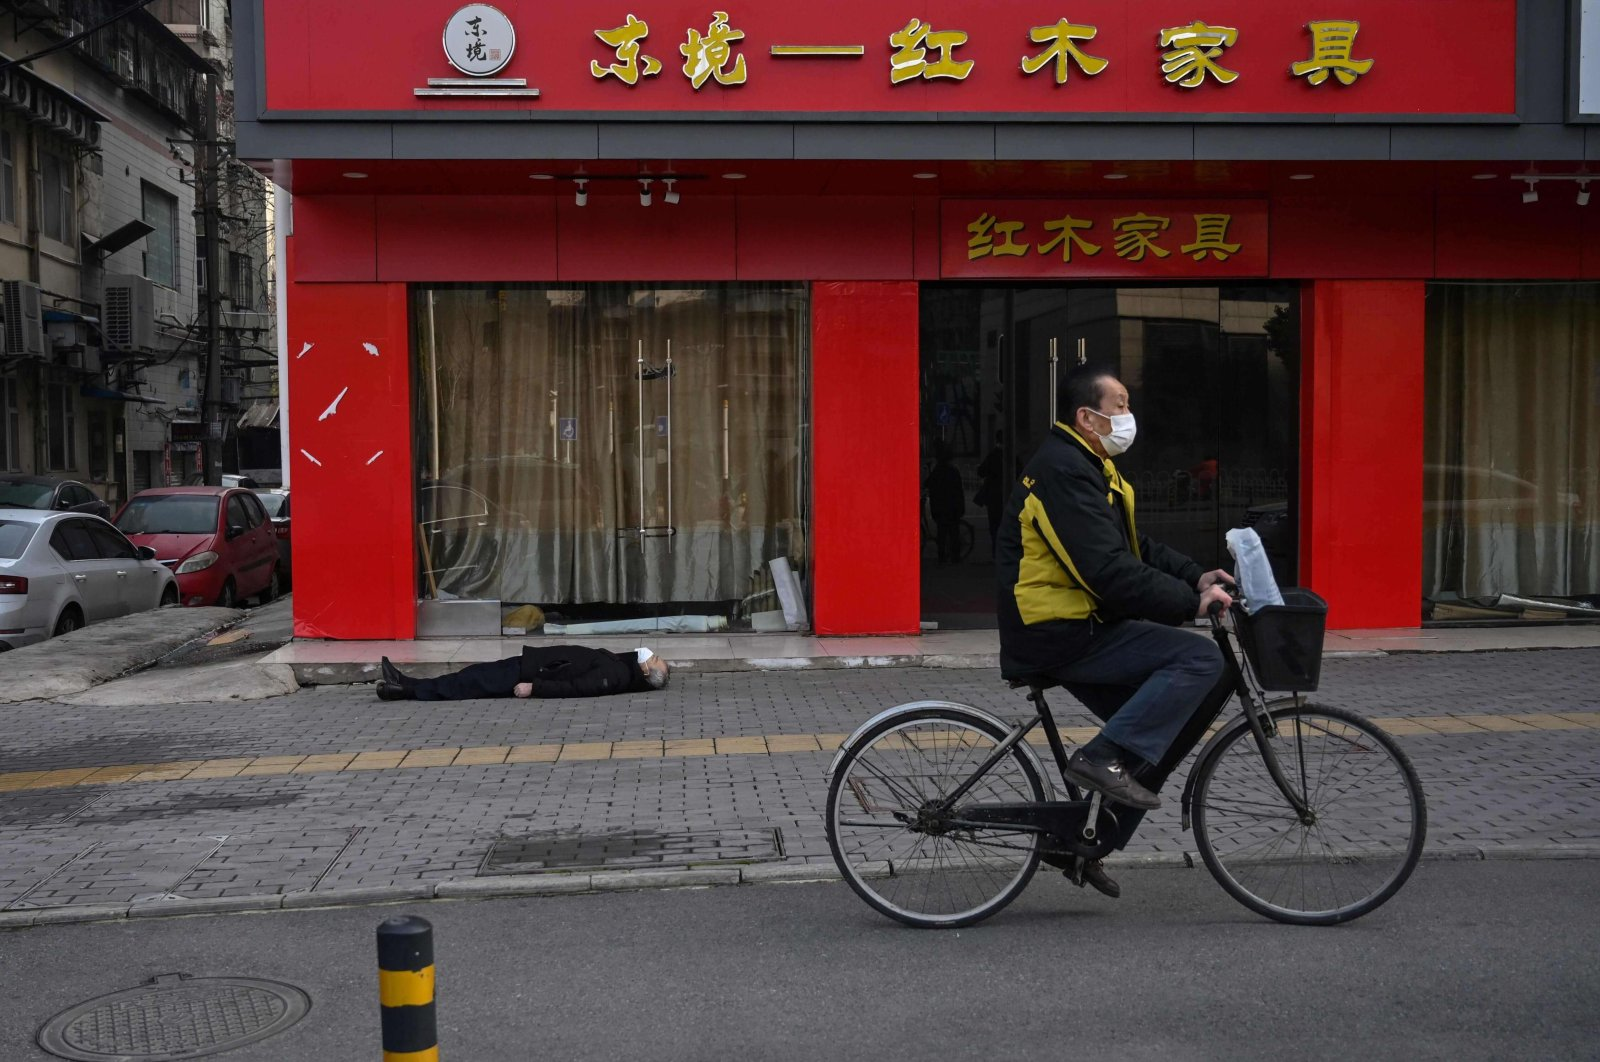 An elderly man wearing a face mask who collapsed and died lays on a street near a hospital as another man rides a bicycle past him in Wuhan, China, Jan. 30, 2020. (AFP Photo)